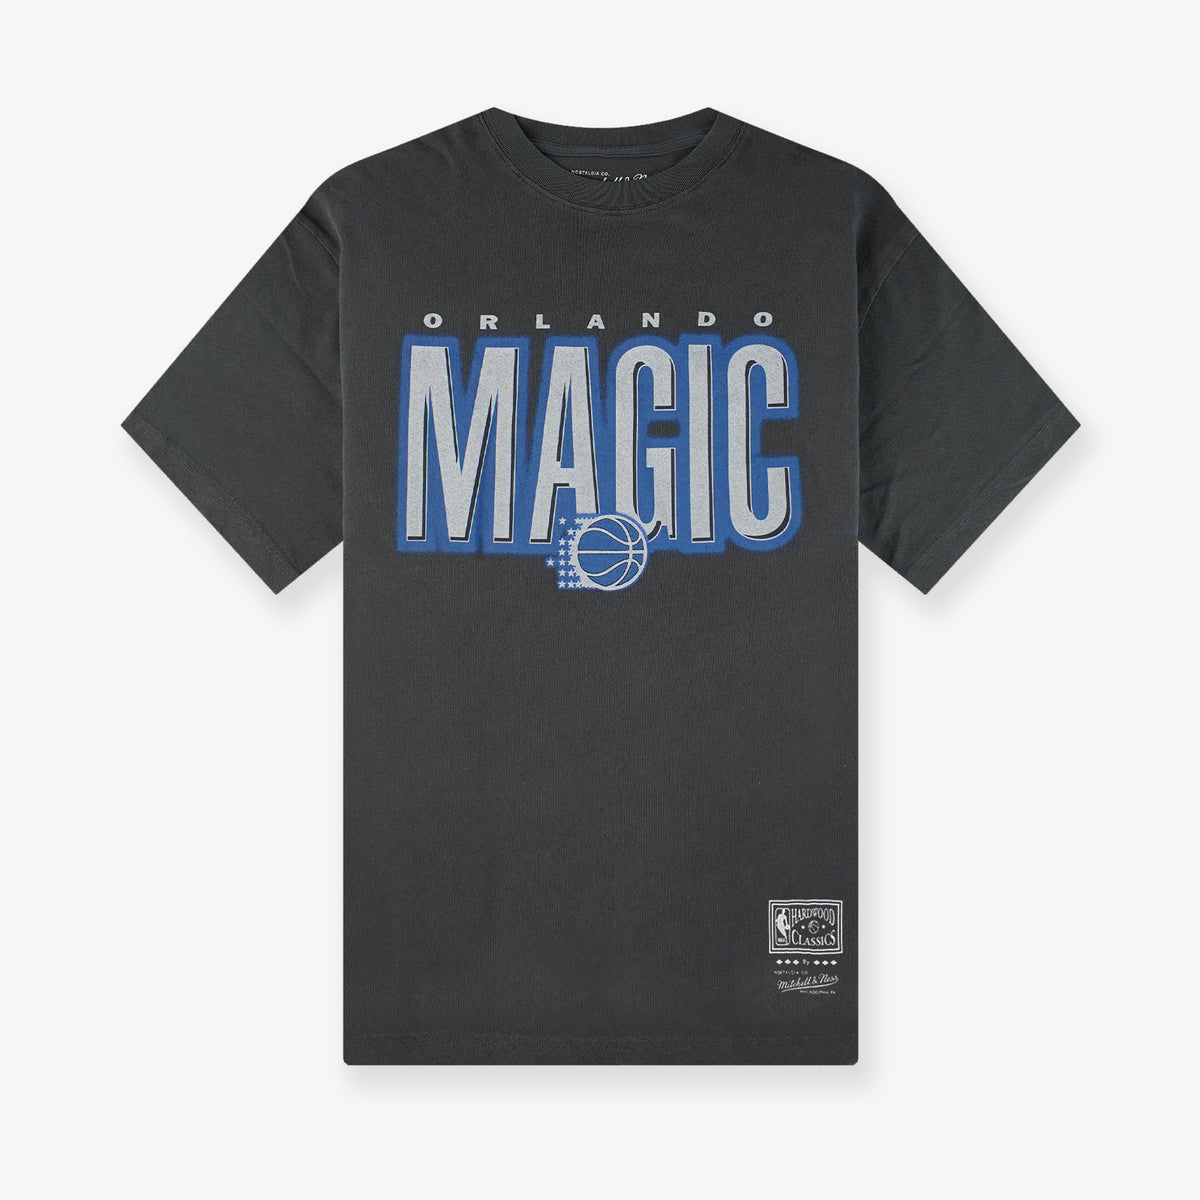 Orlando Magic Retro Blur T-Shirt - Faded Black